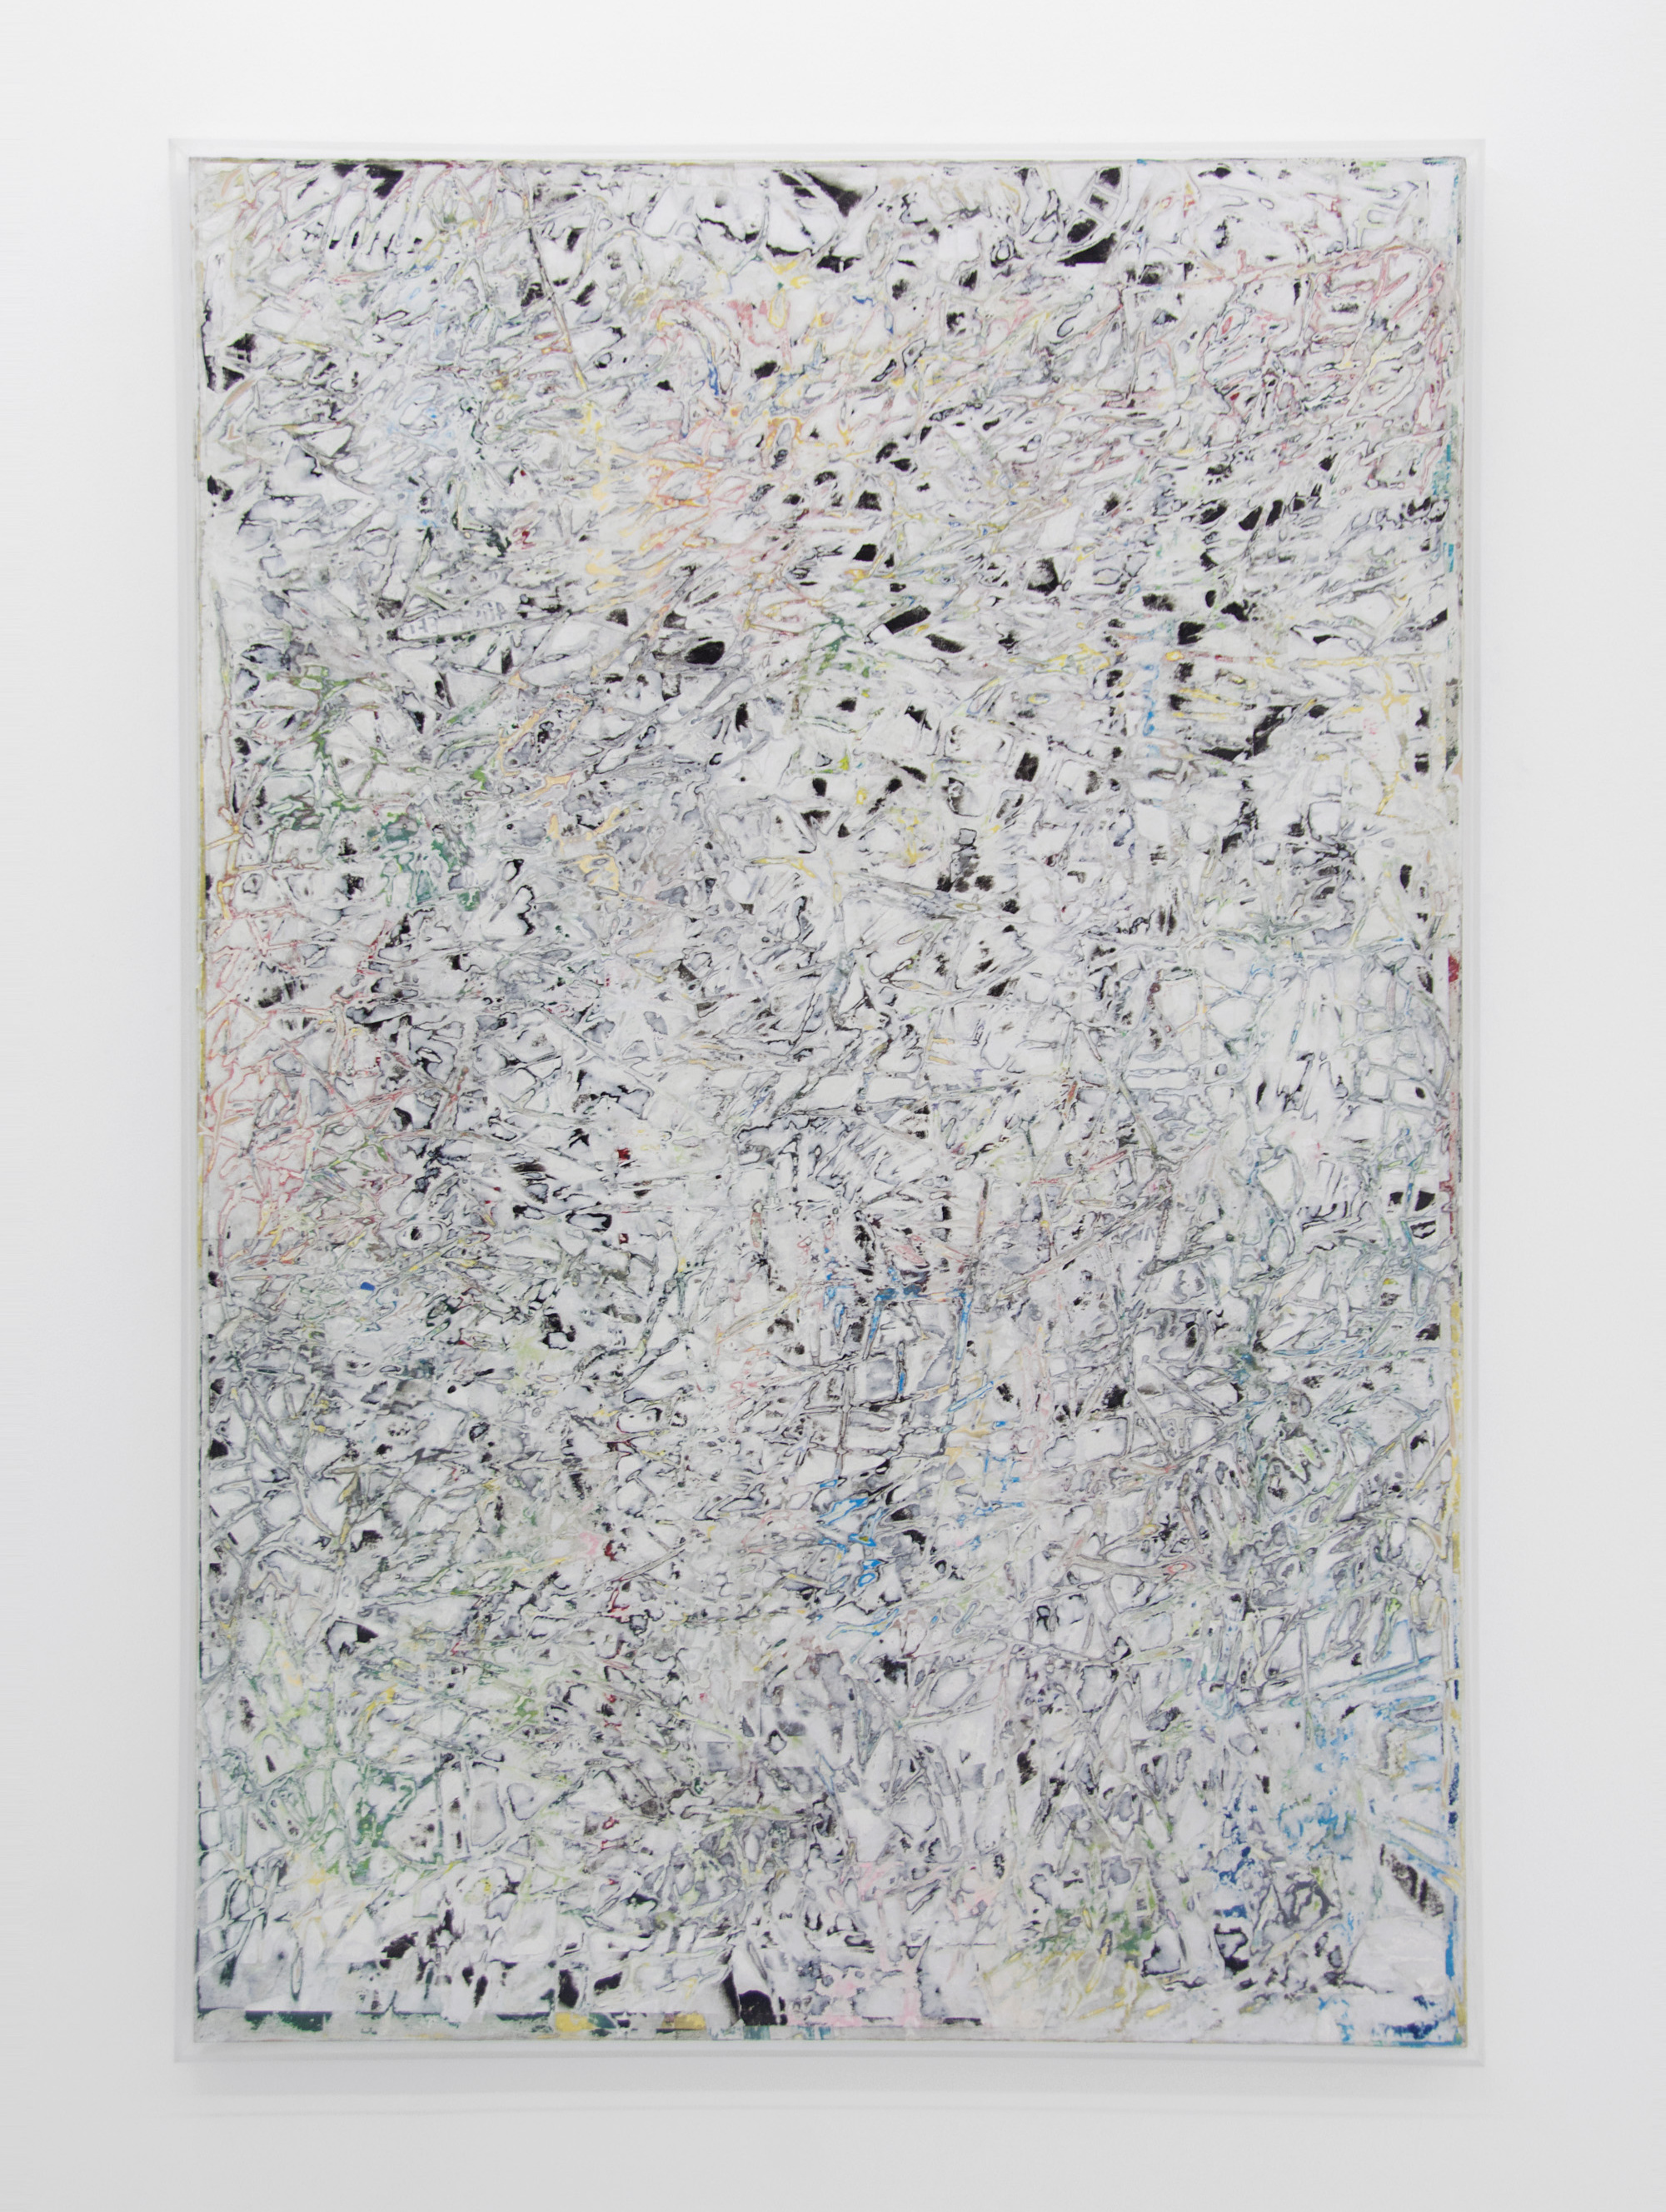 ANDREW LAUMANN   Untitled (Ambient Works II),  2015, Acrylic paint, methylcellulose, paper, on panel in acrylic frame